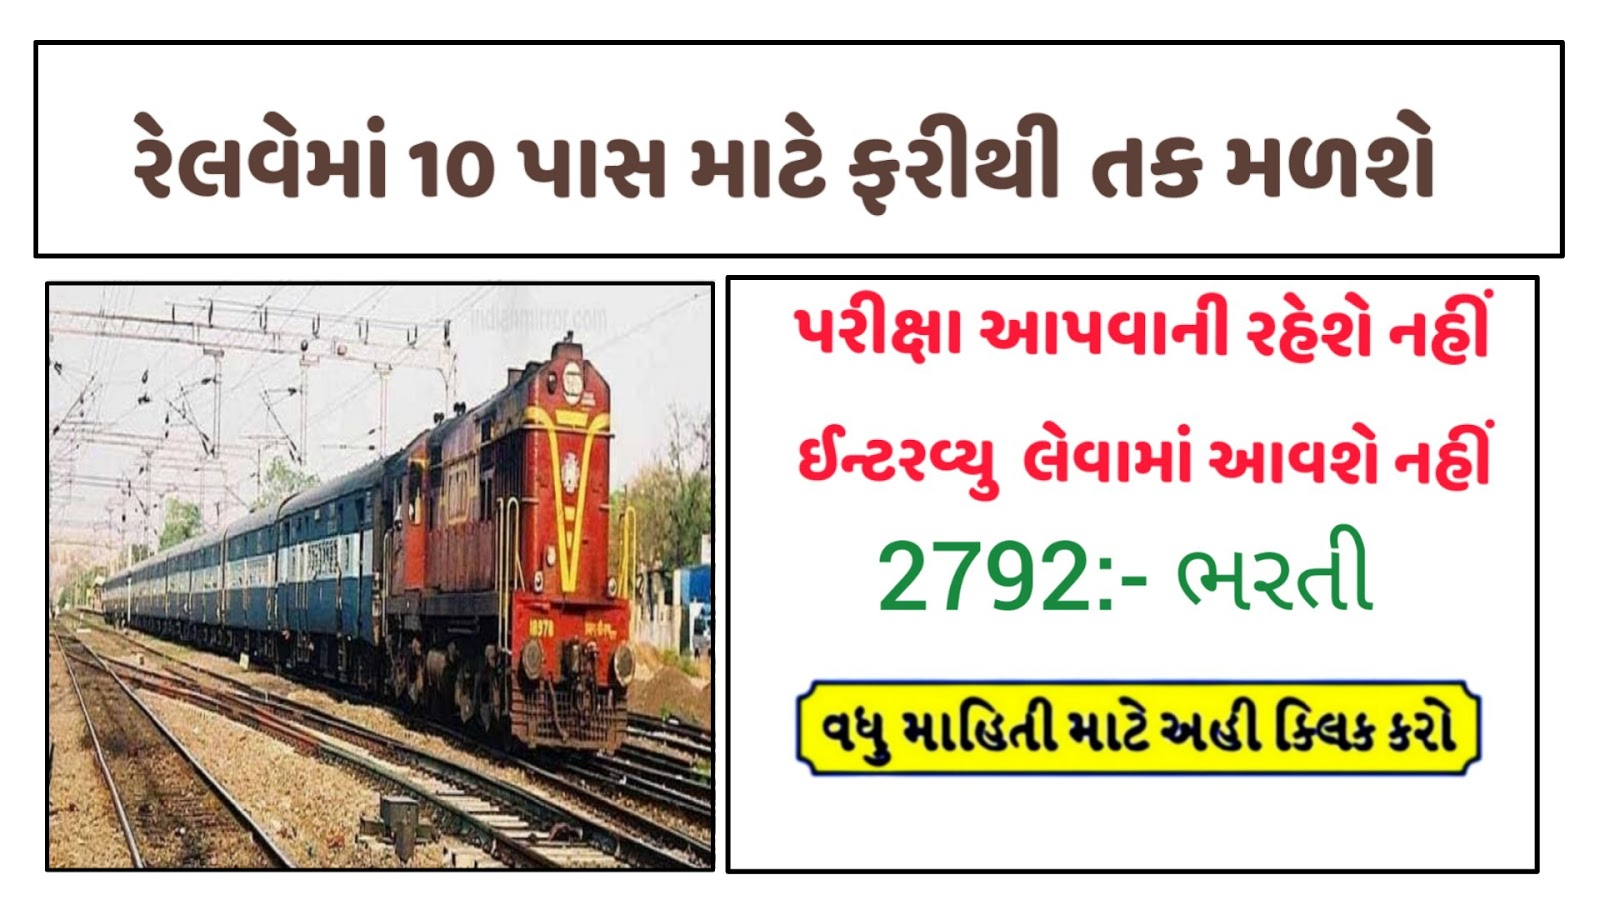 Railway 10th pass will get a chance again, will not have to be given the exam and will not be interviewed